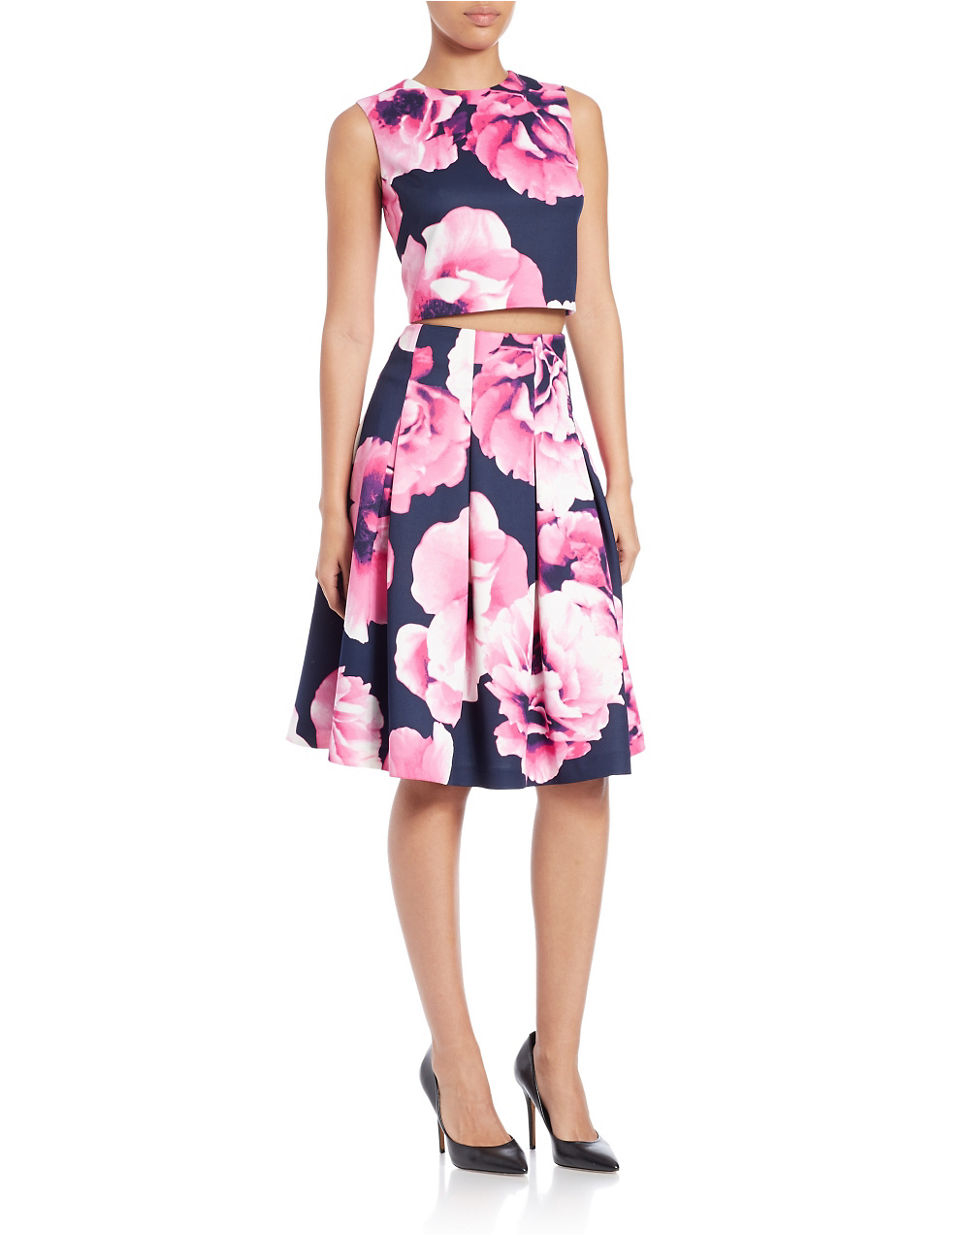 669e26d5284a Eliza J Petite Two-piece Floral Crop Top And Skirt Set in Blue - Lyst